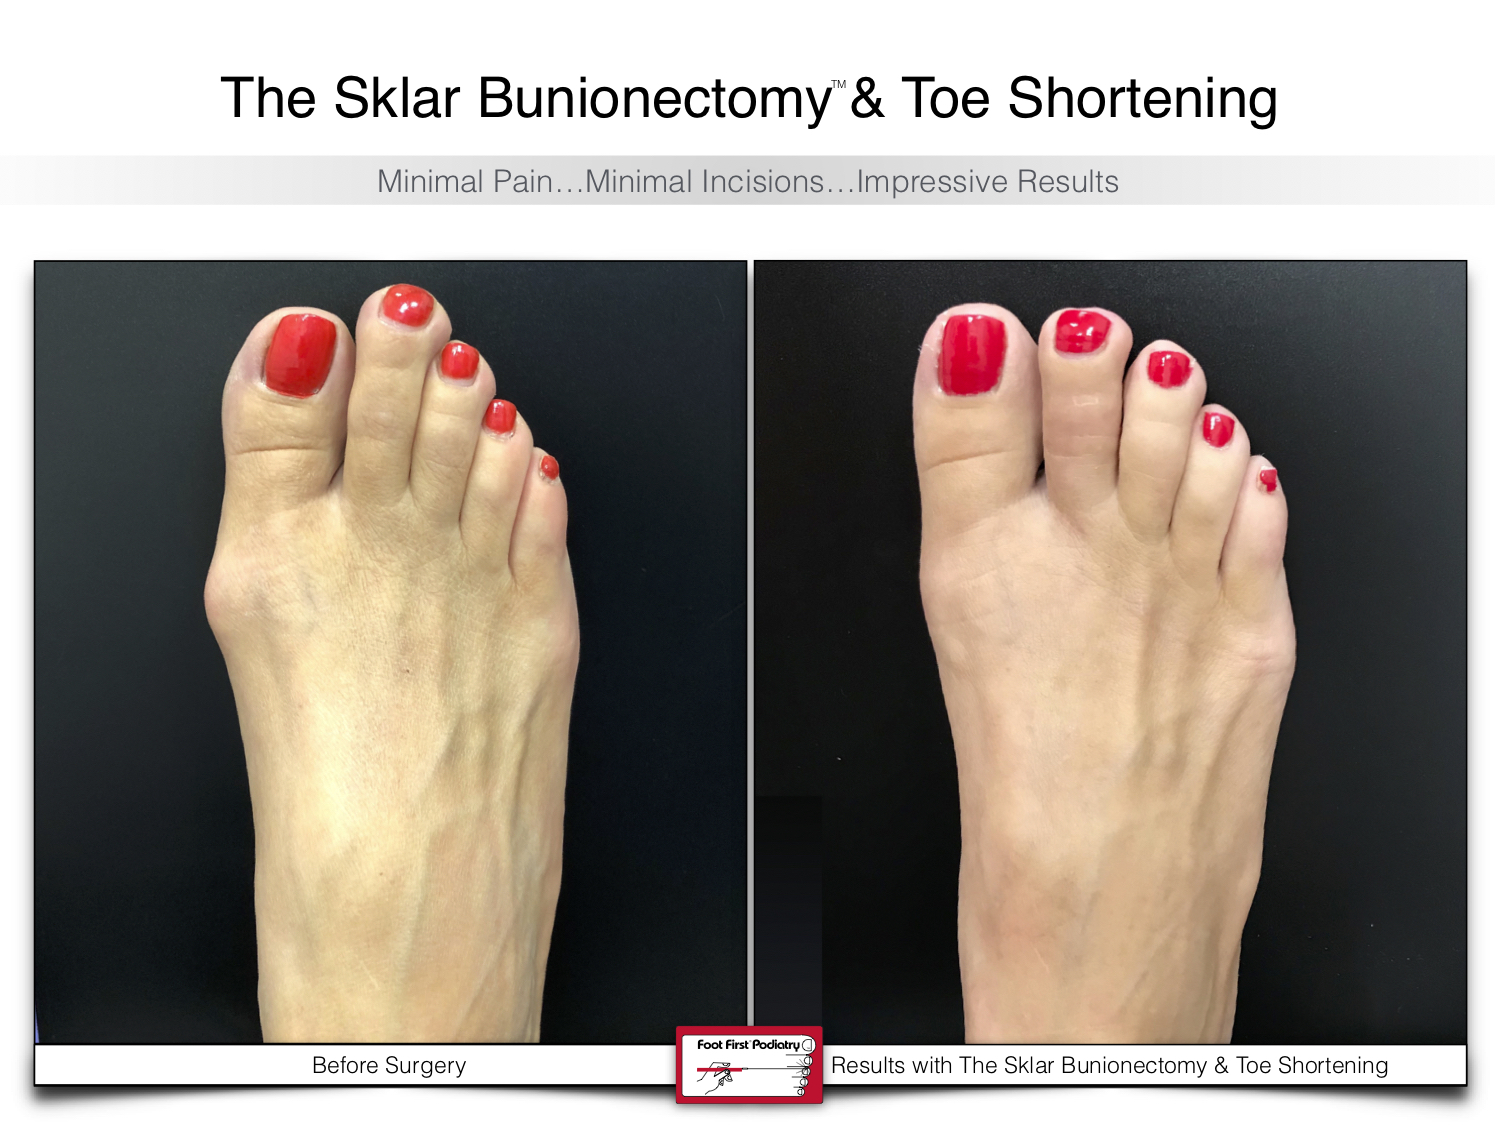 www.footfirst.com | Cosmetic Bunion and Toe Shortening Surgery 125.jpg